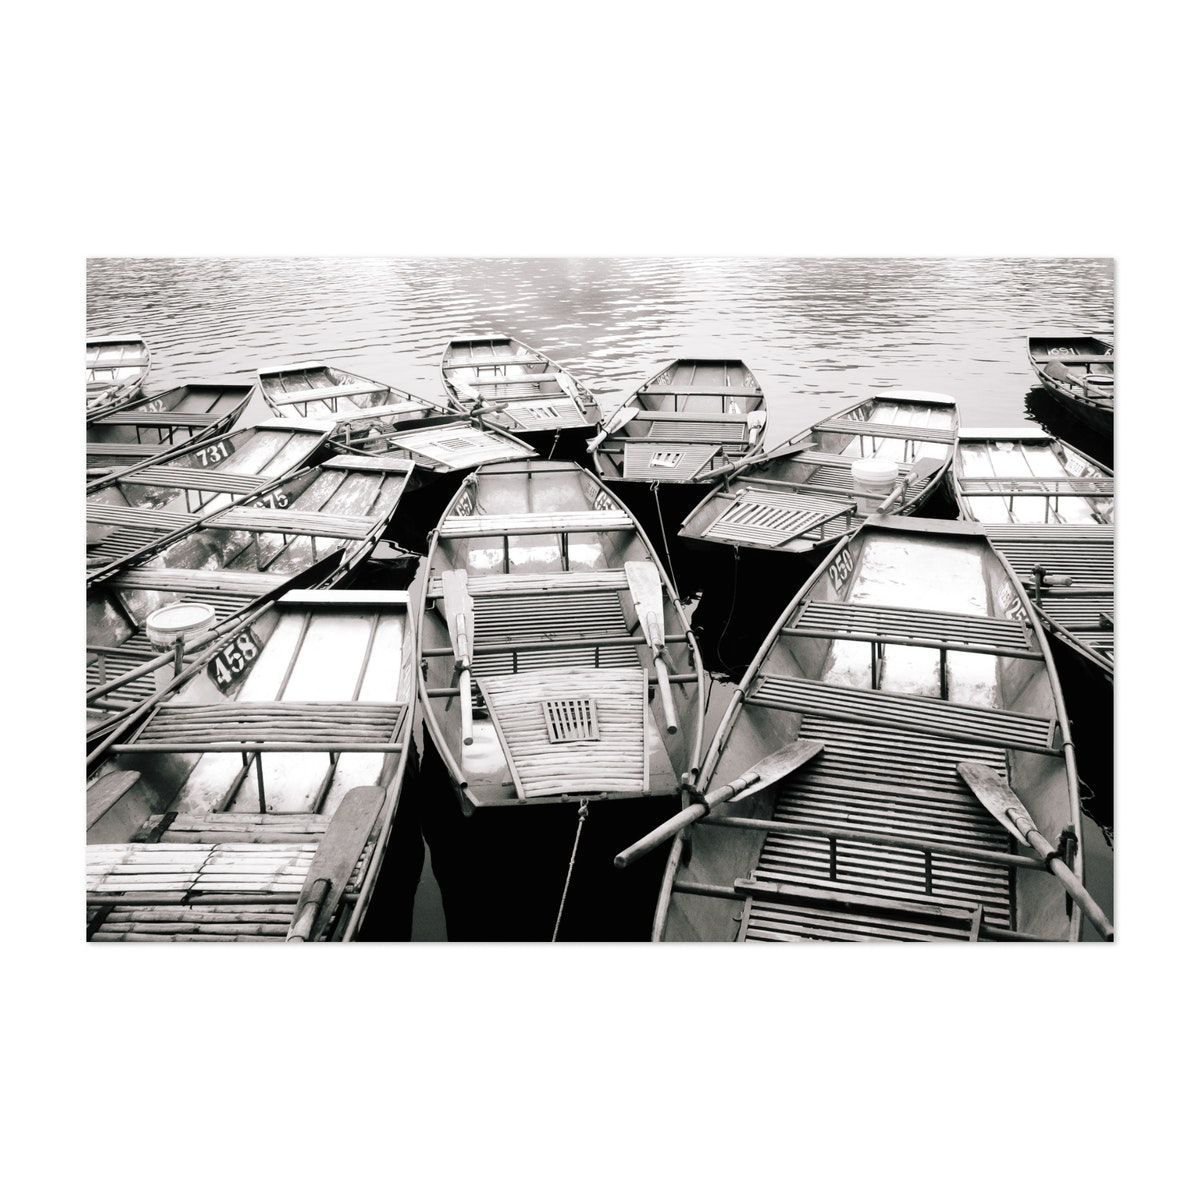 Boats on the River in Vietnam